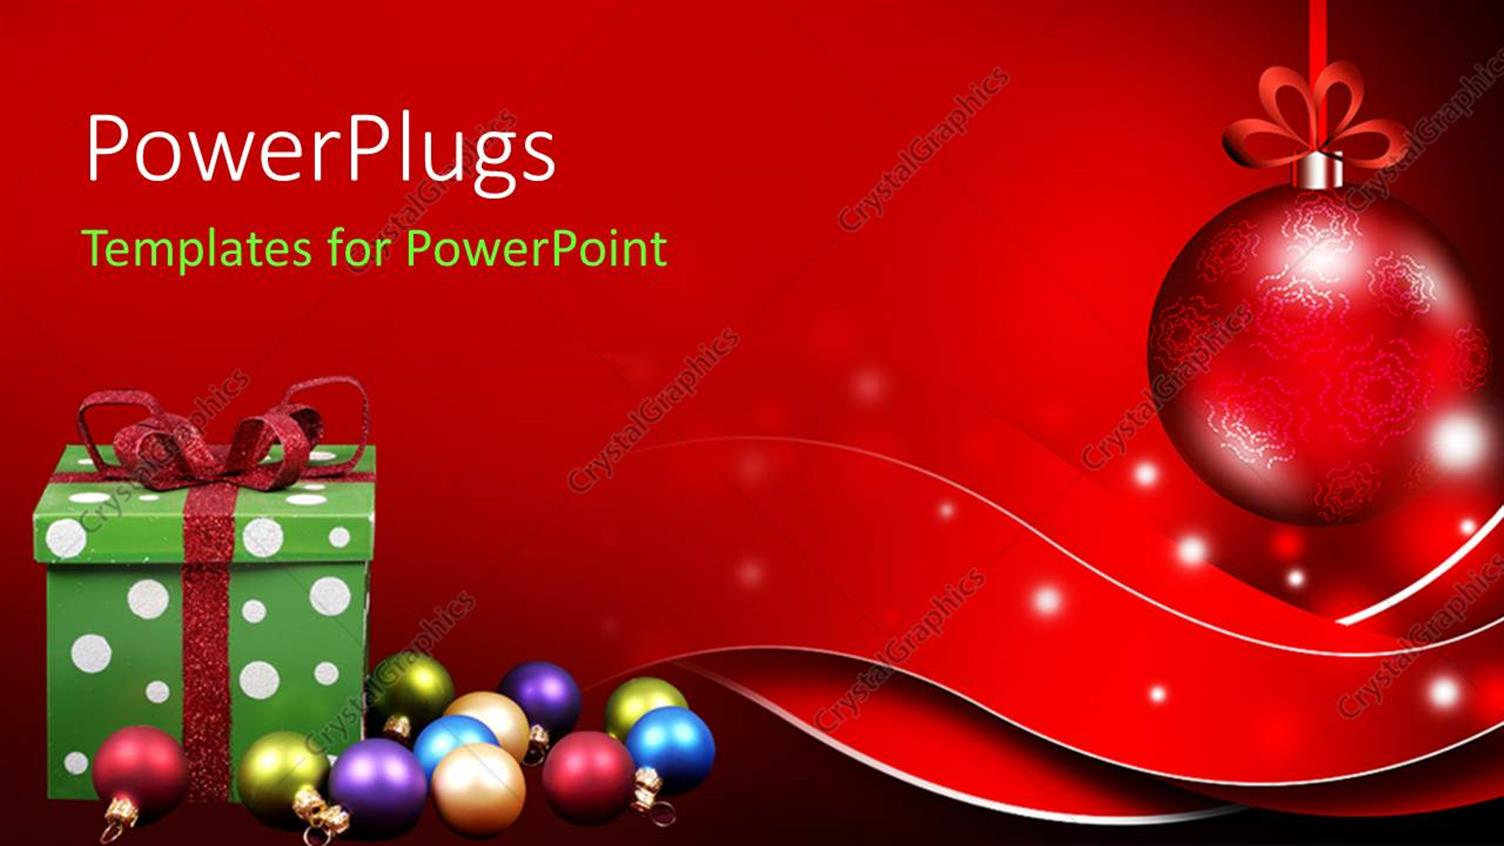 PowerPoint Template Displaying Christmas Depiction with Gift Box and Colorful Ornaments on Red Surface